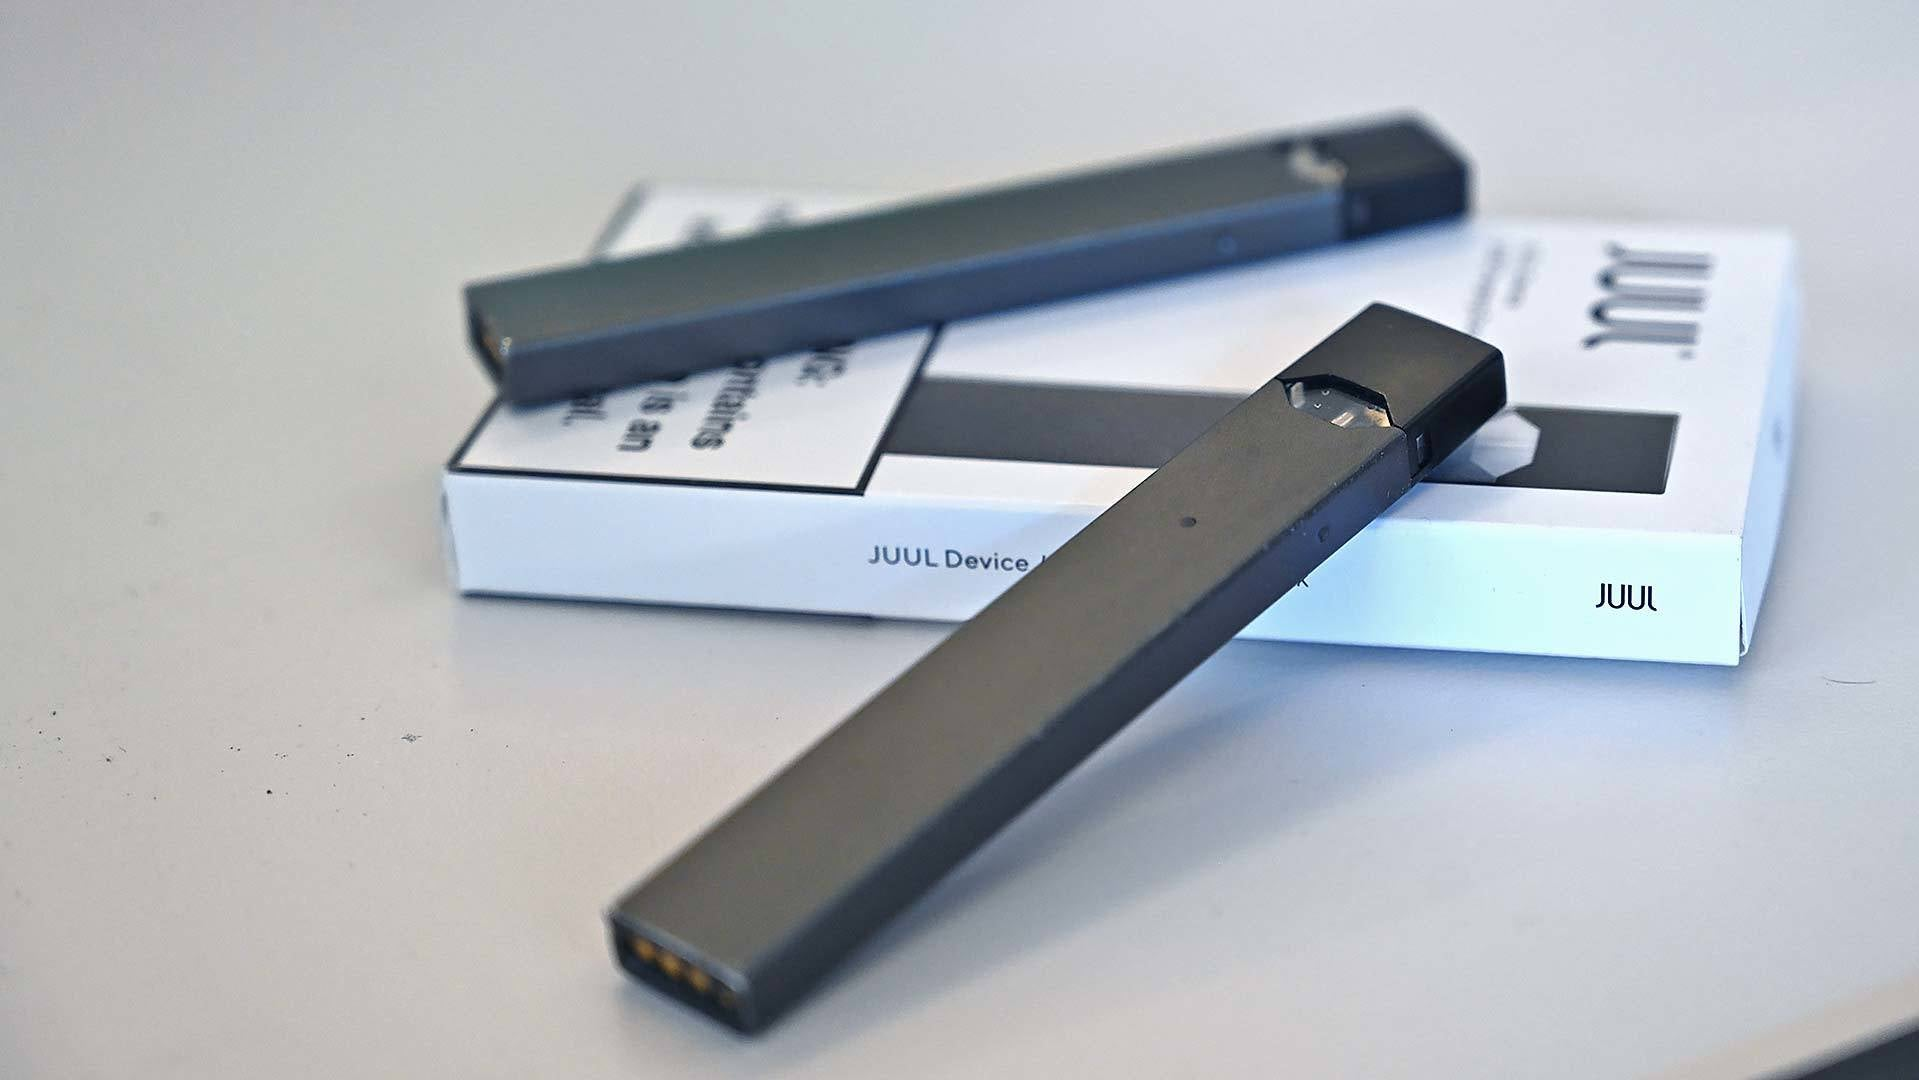 California Is Suing Juul For Allegedly Targeting Kids With Its Bad Marketing